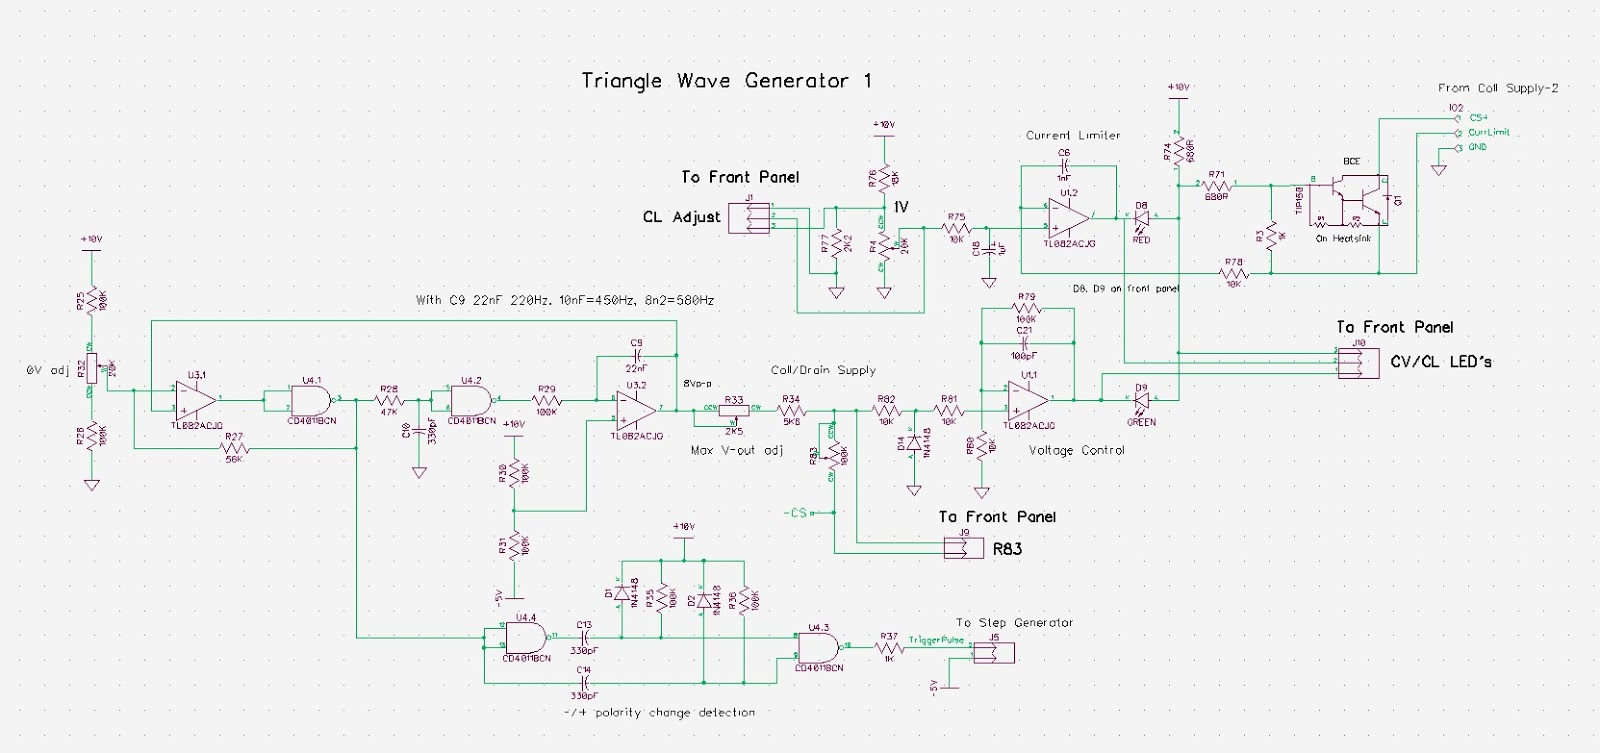 Pauls Diy Electronics Blog Building Another Curve Tracer The Cmos Logic Probe Circuit Amplifiercircuit Diagram This Portion For A Large Part Follows Original Design Let Me Go Through Step At Time Upper Left Comprises